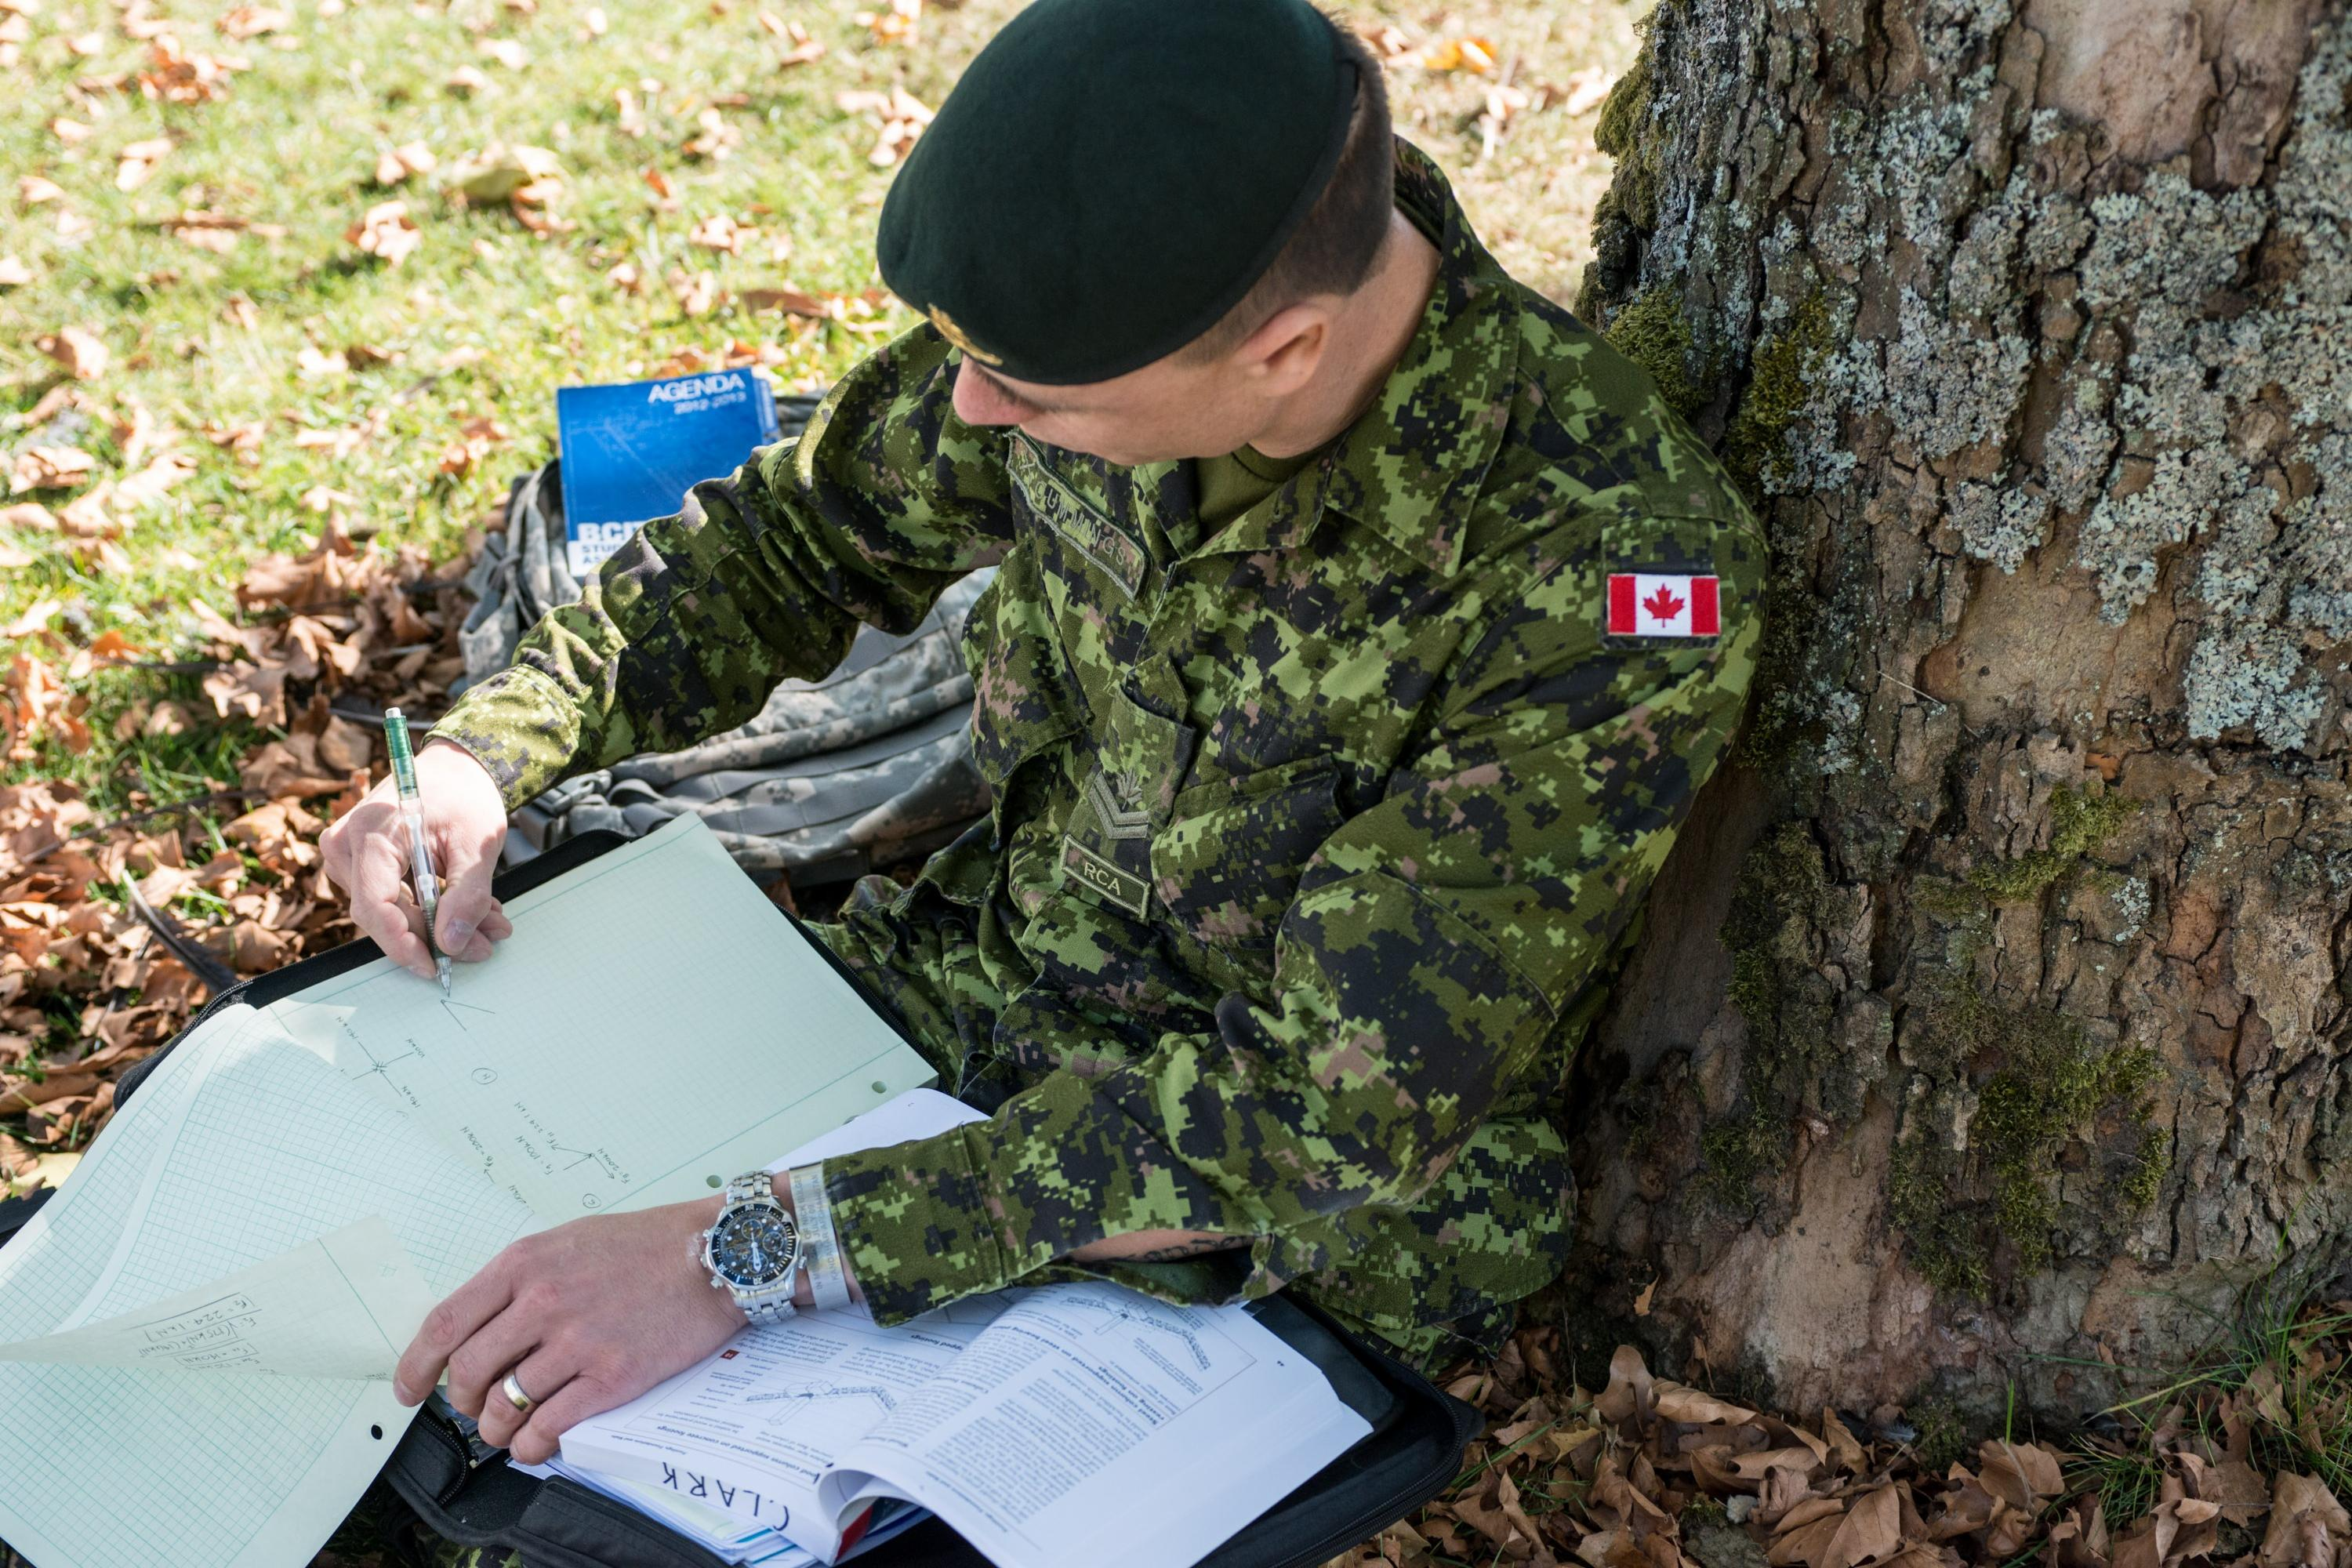 Legion Military Skills Conversion program man sits under tree at BCIT wearing uniform and studying books.